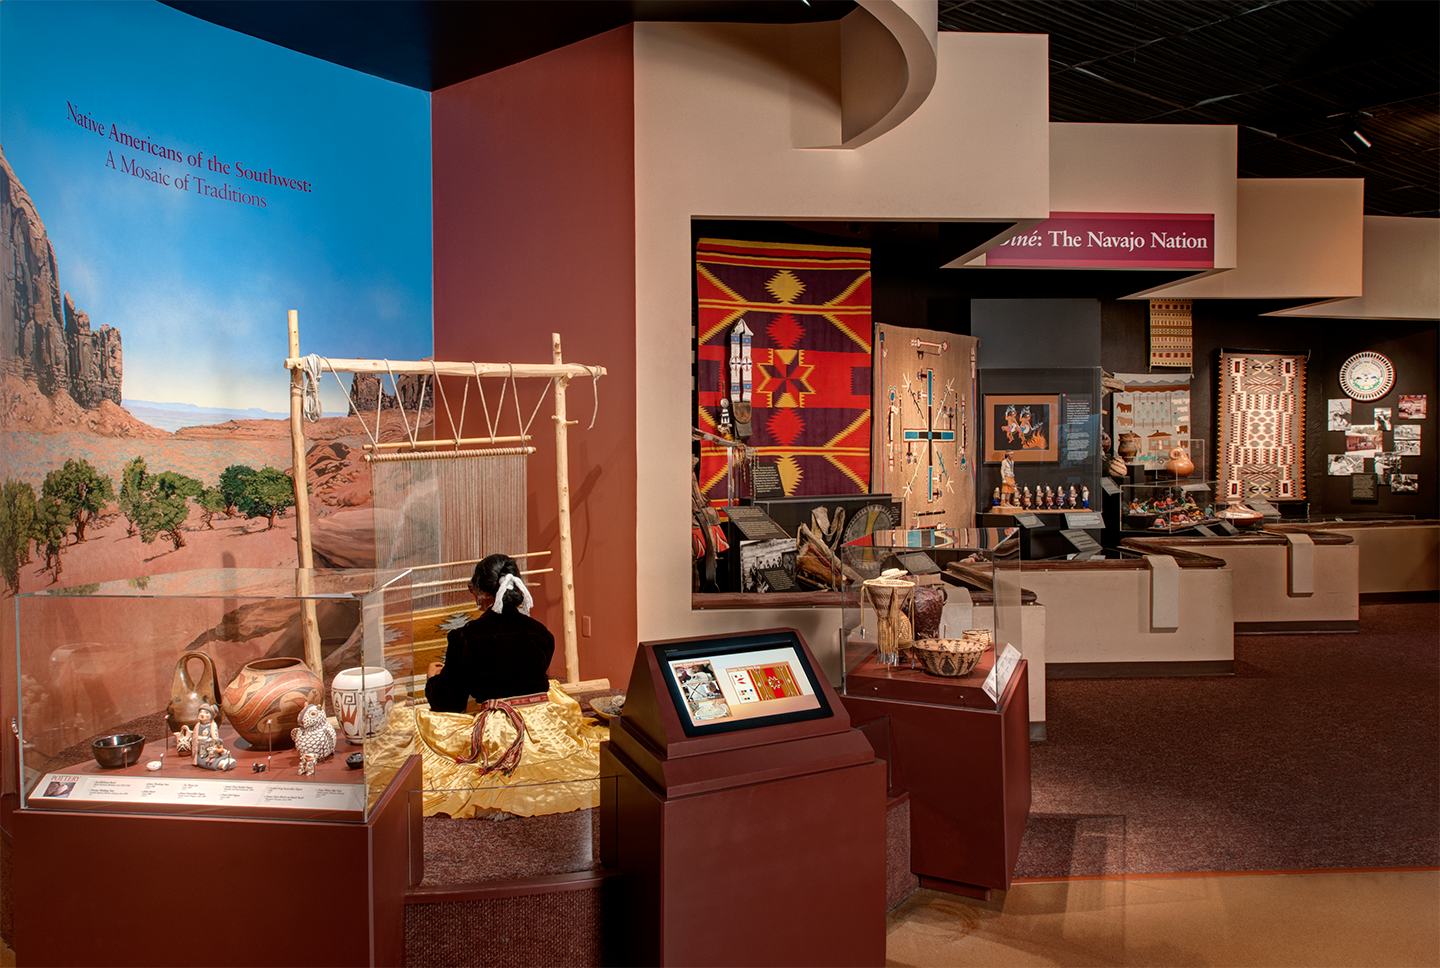 North American Indian Culture in Denver Museum